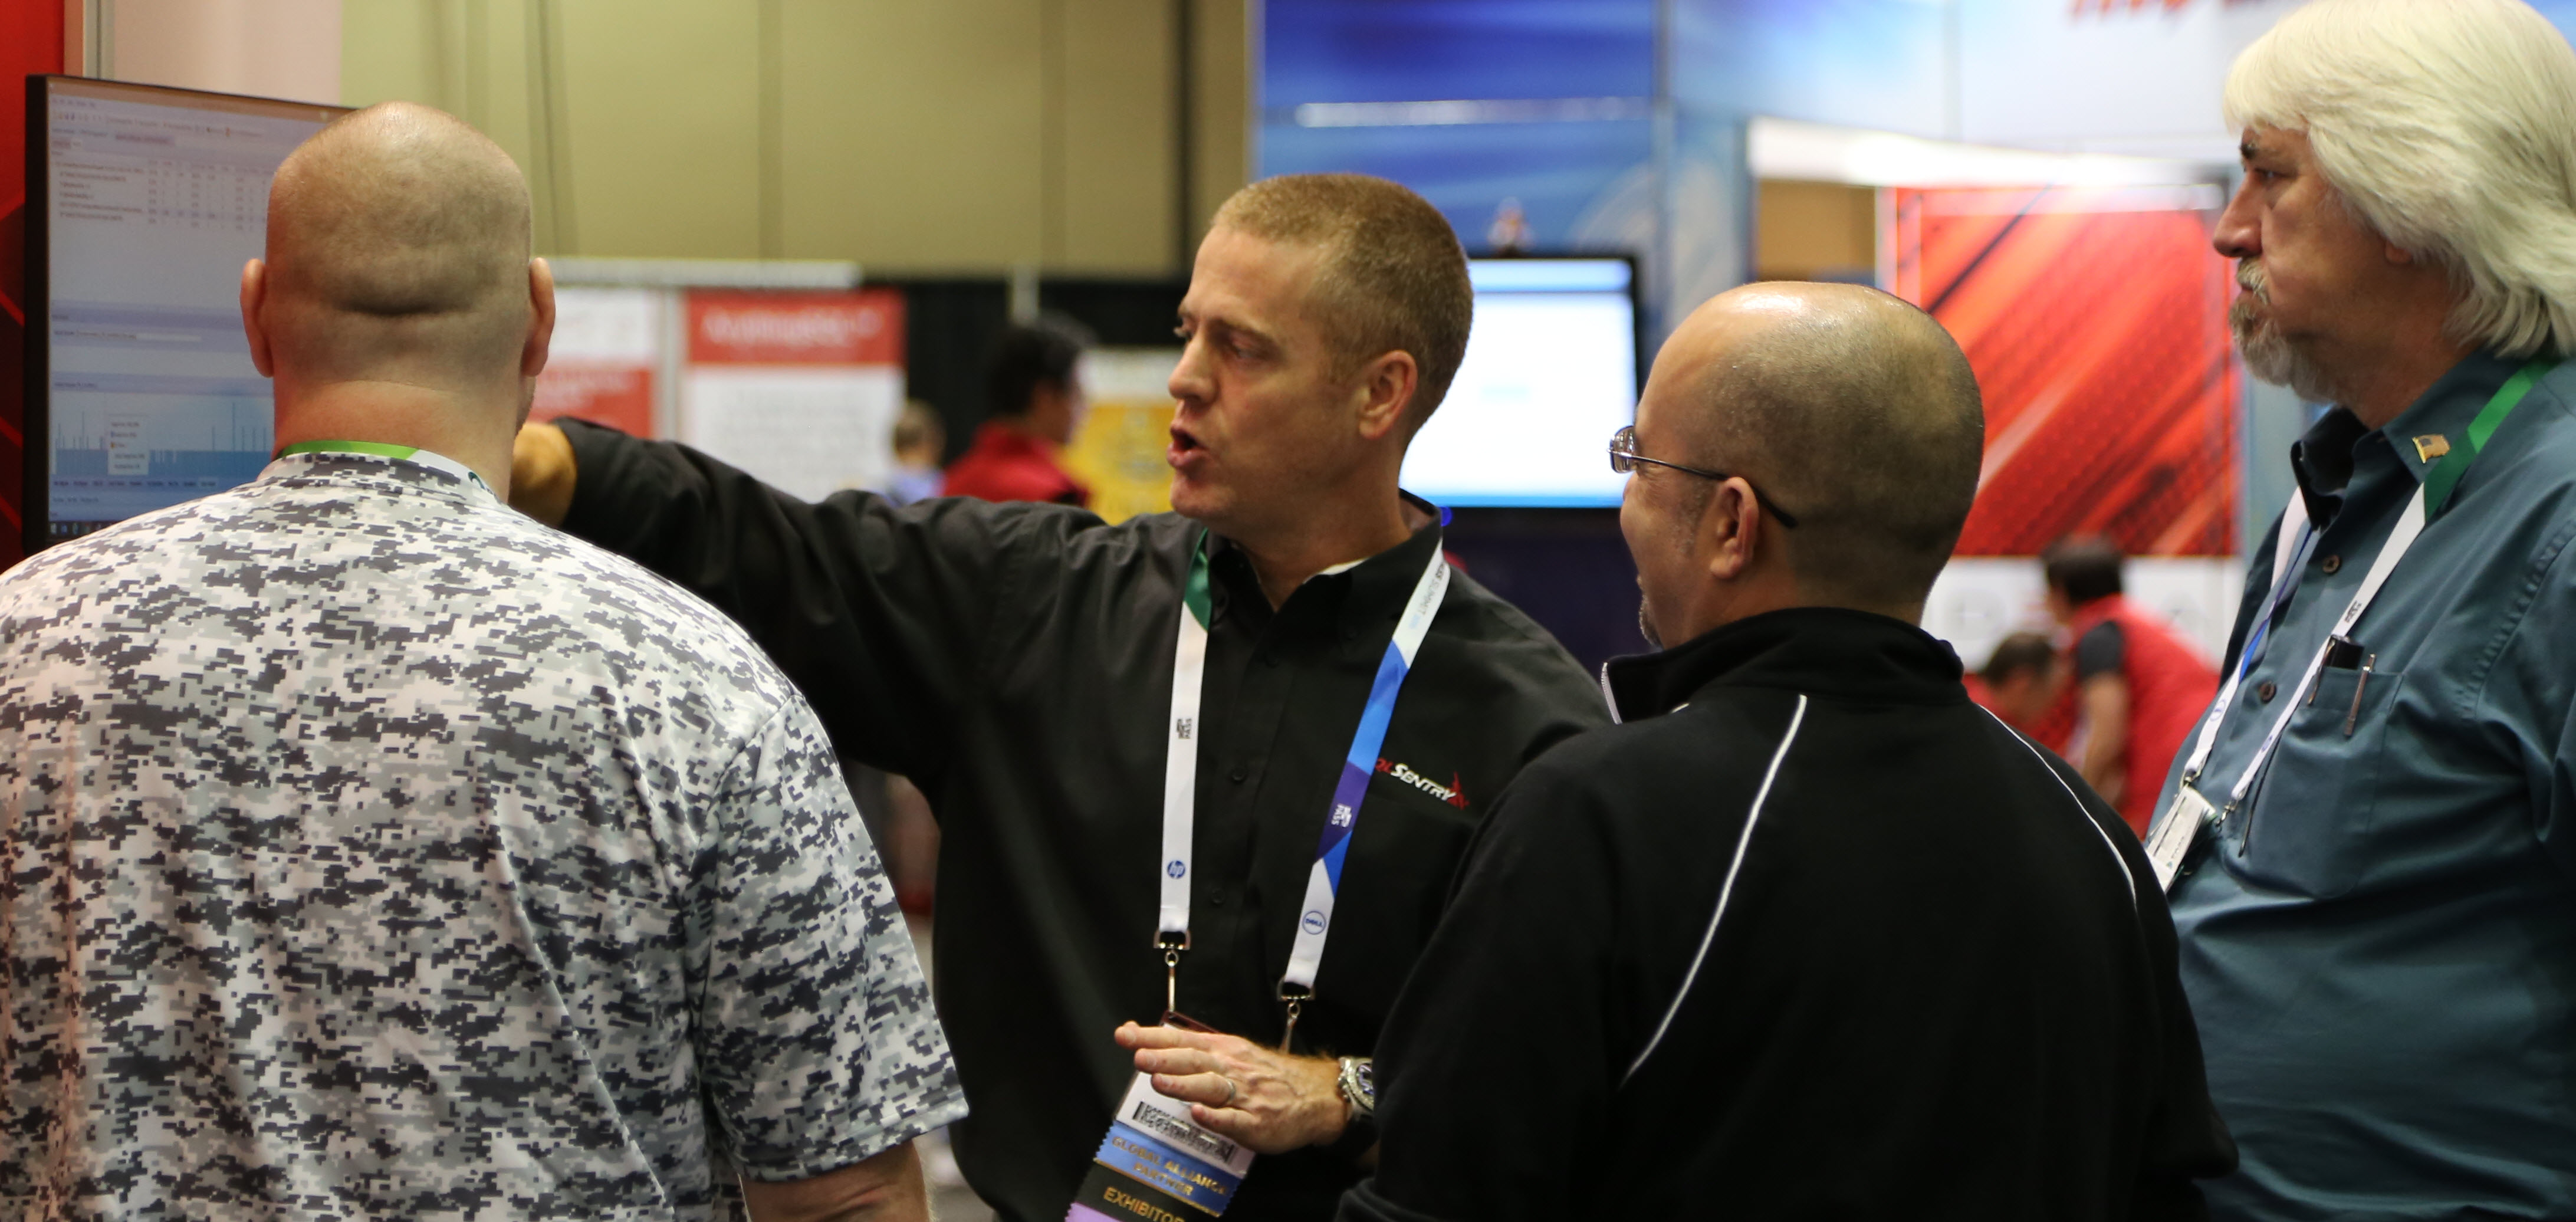 Greg at PASS Summit 2015